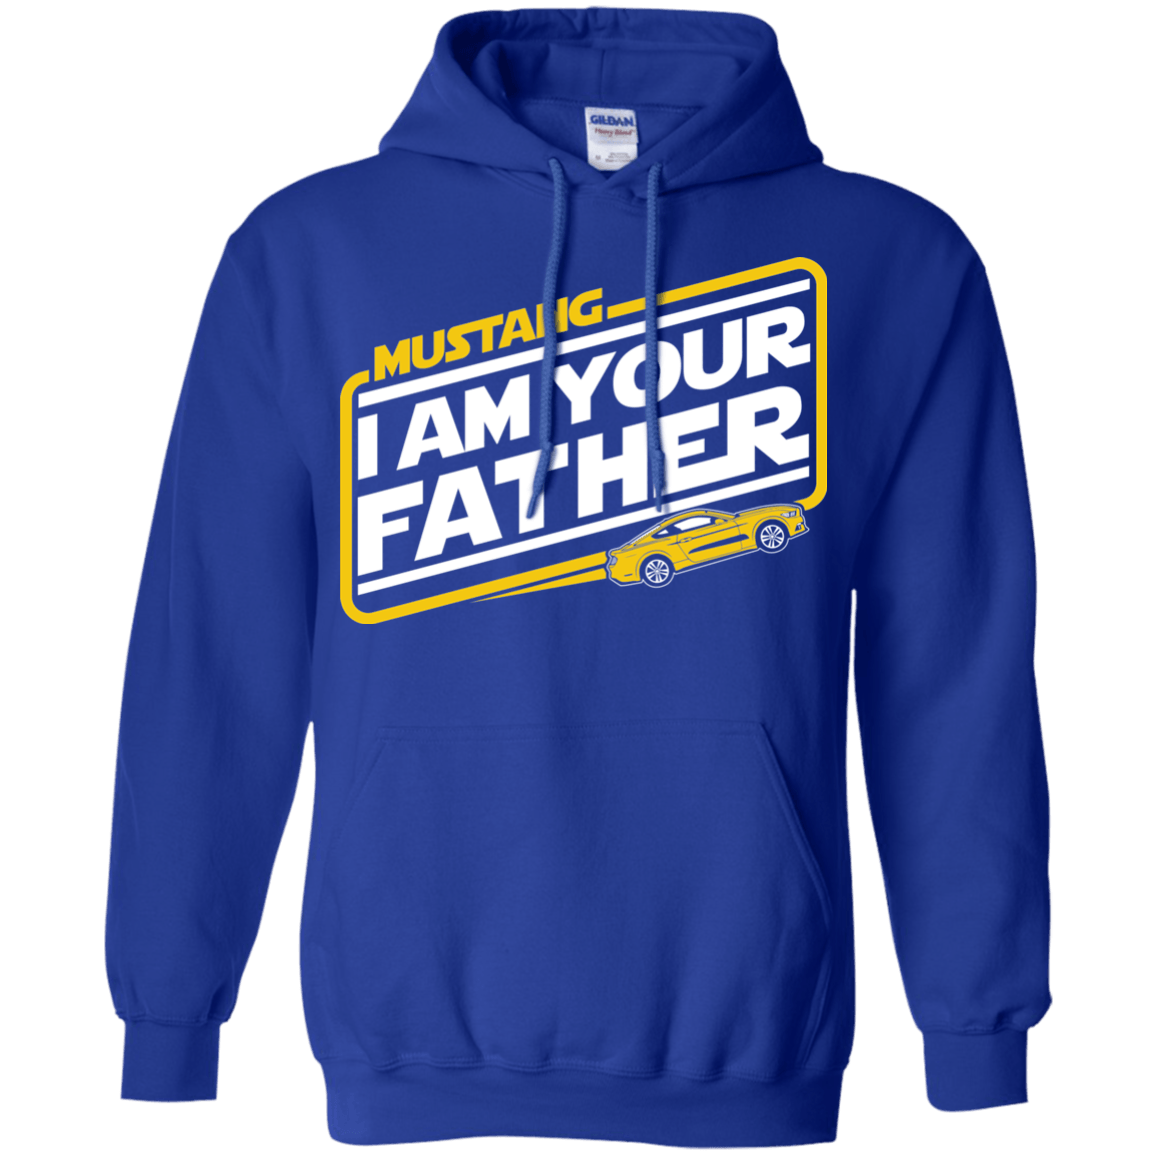 S550 Mustang I am Your Father Hoodie - Wheel Spin Addict 9303e41da7